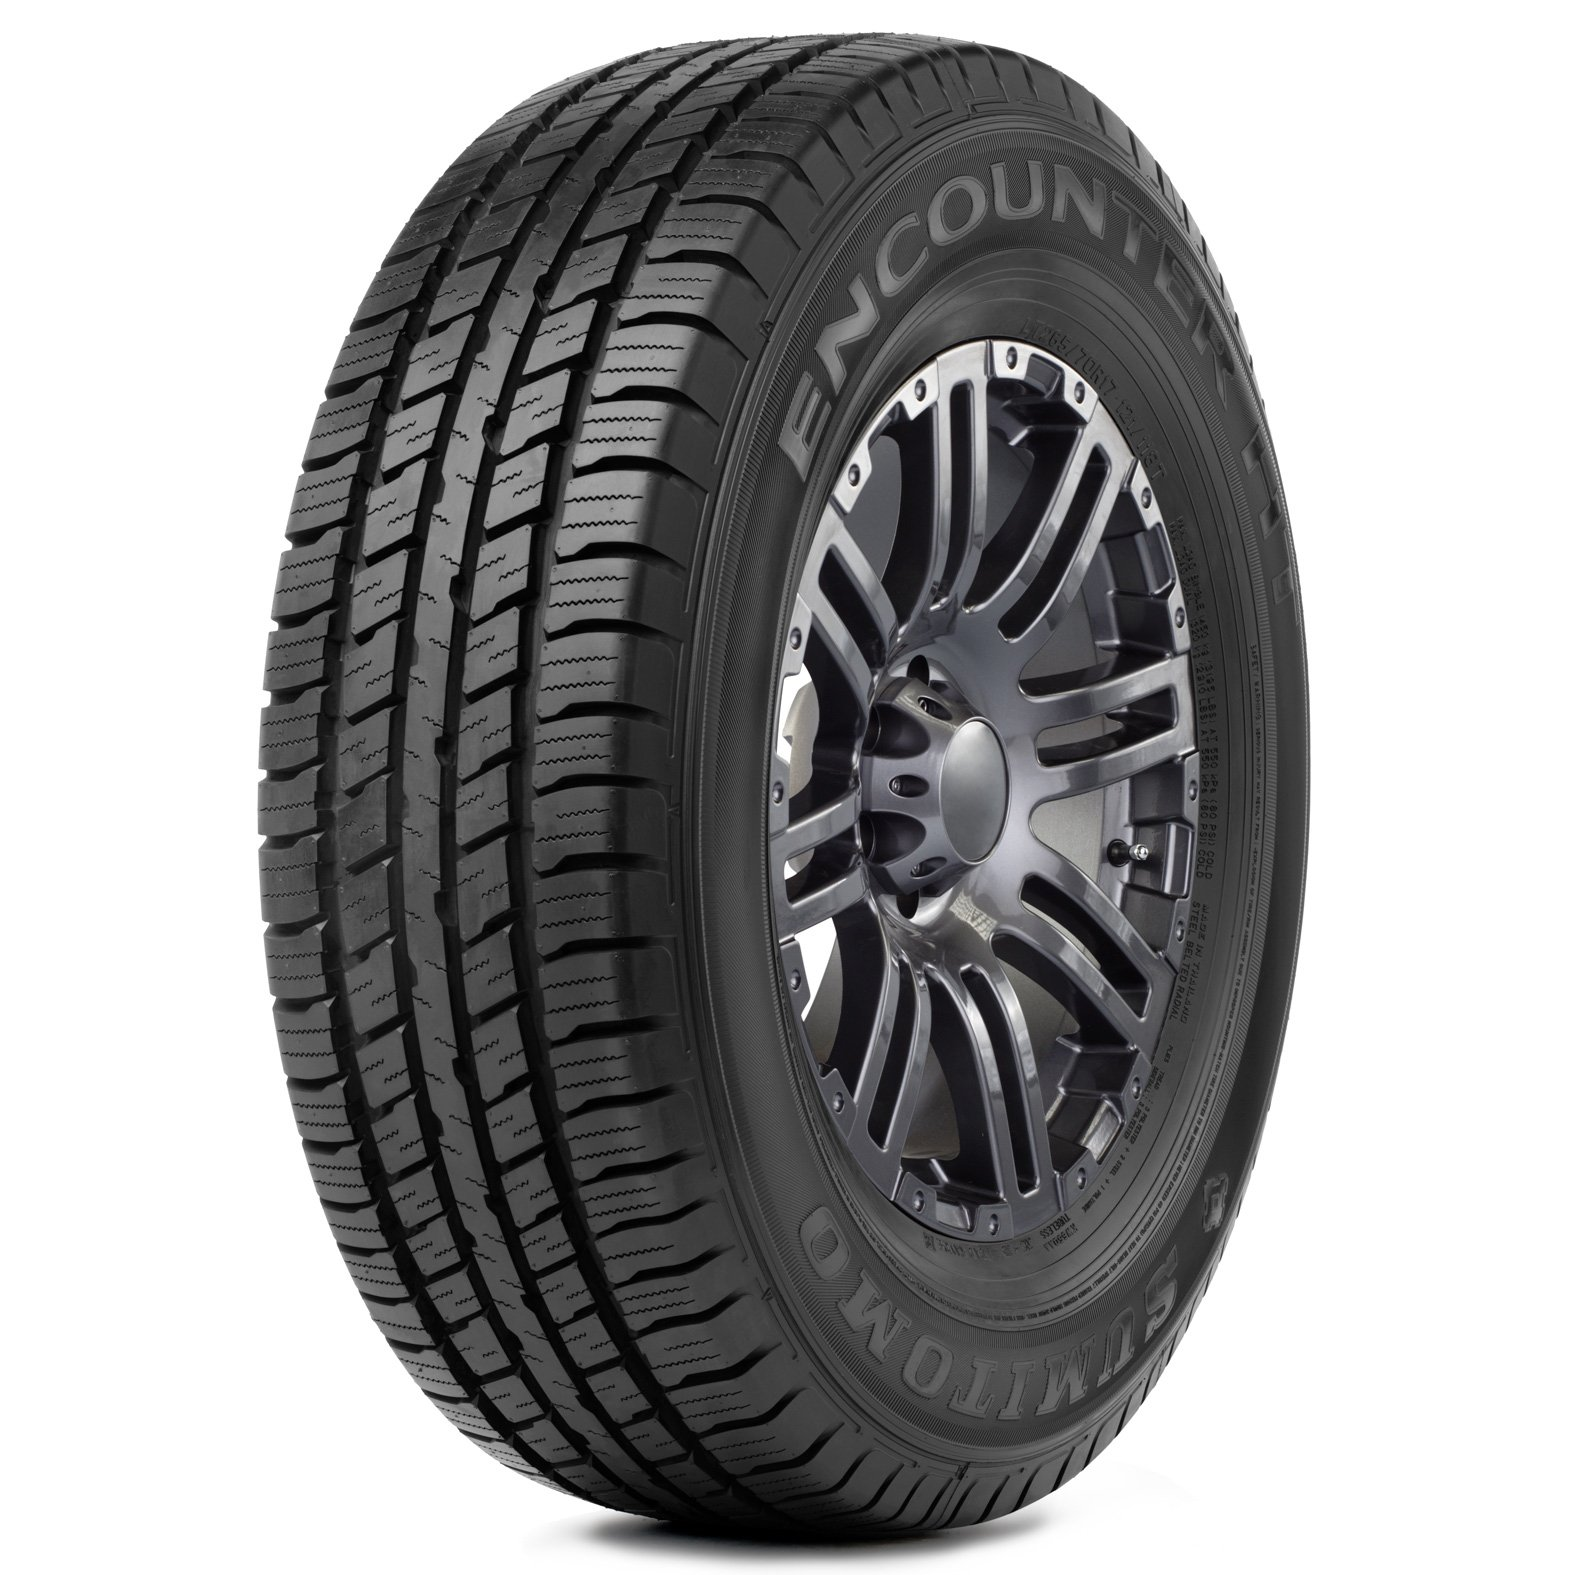 Sumitomo Encounter HT tire – angle